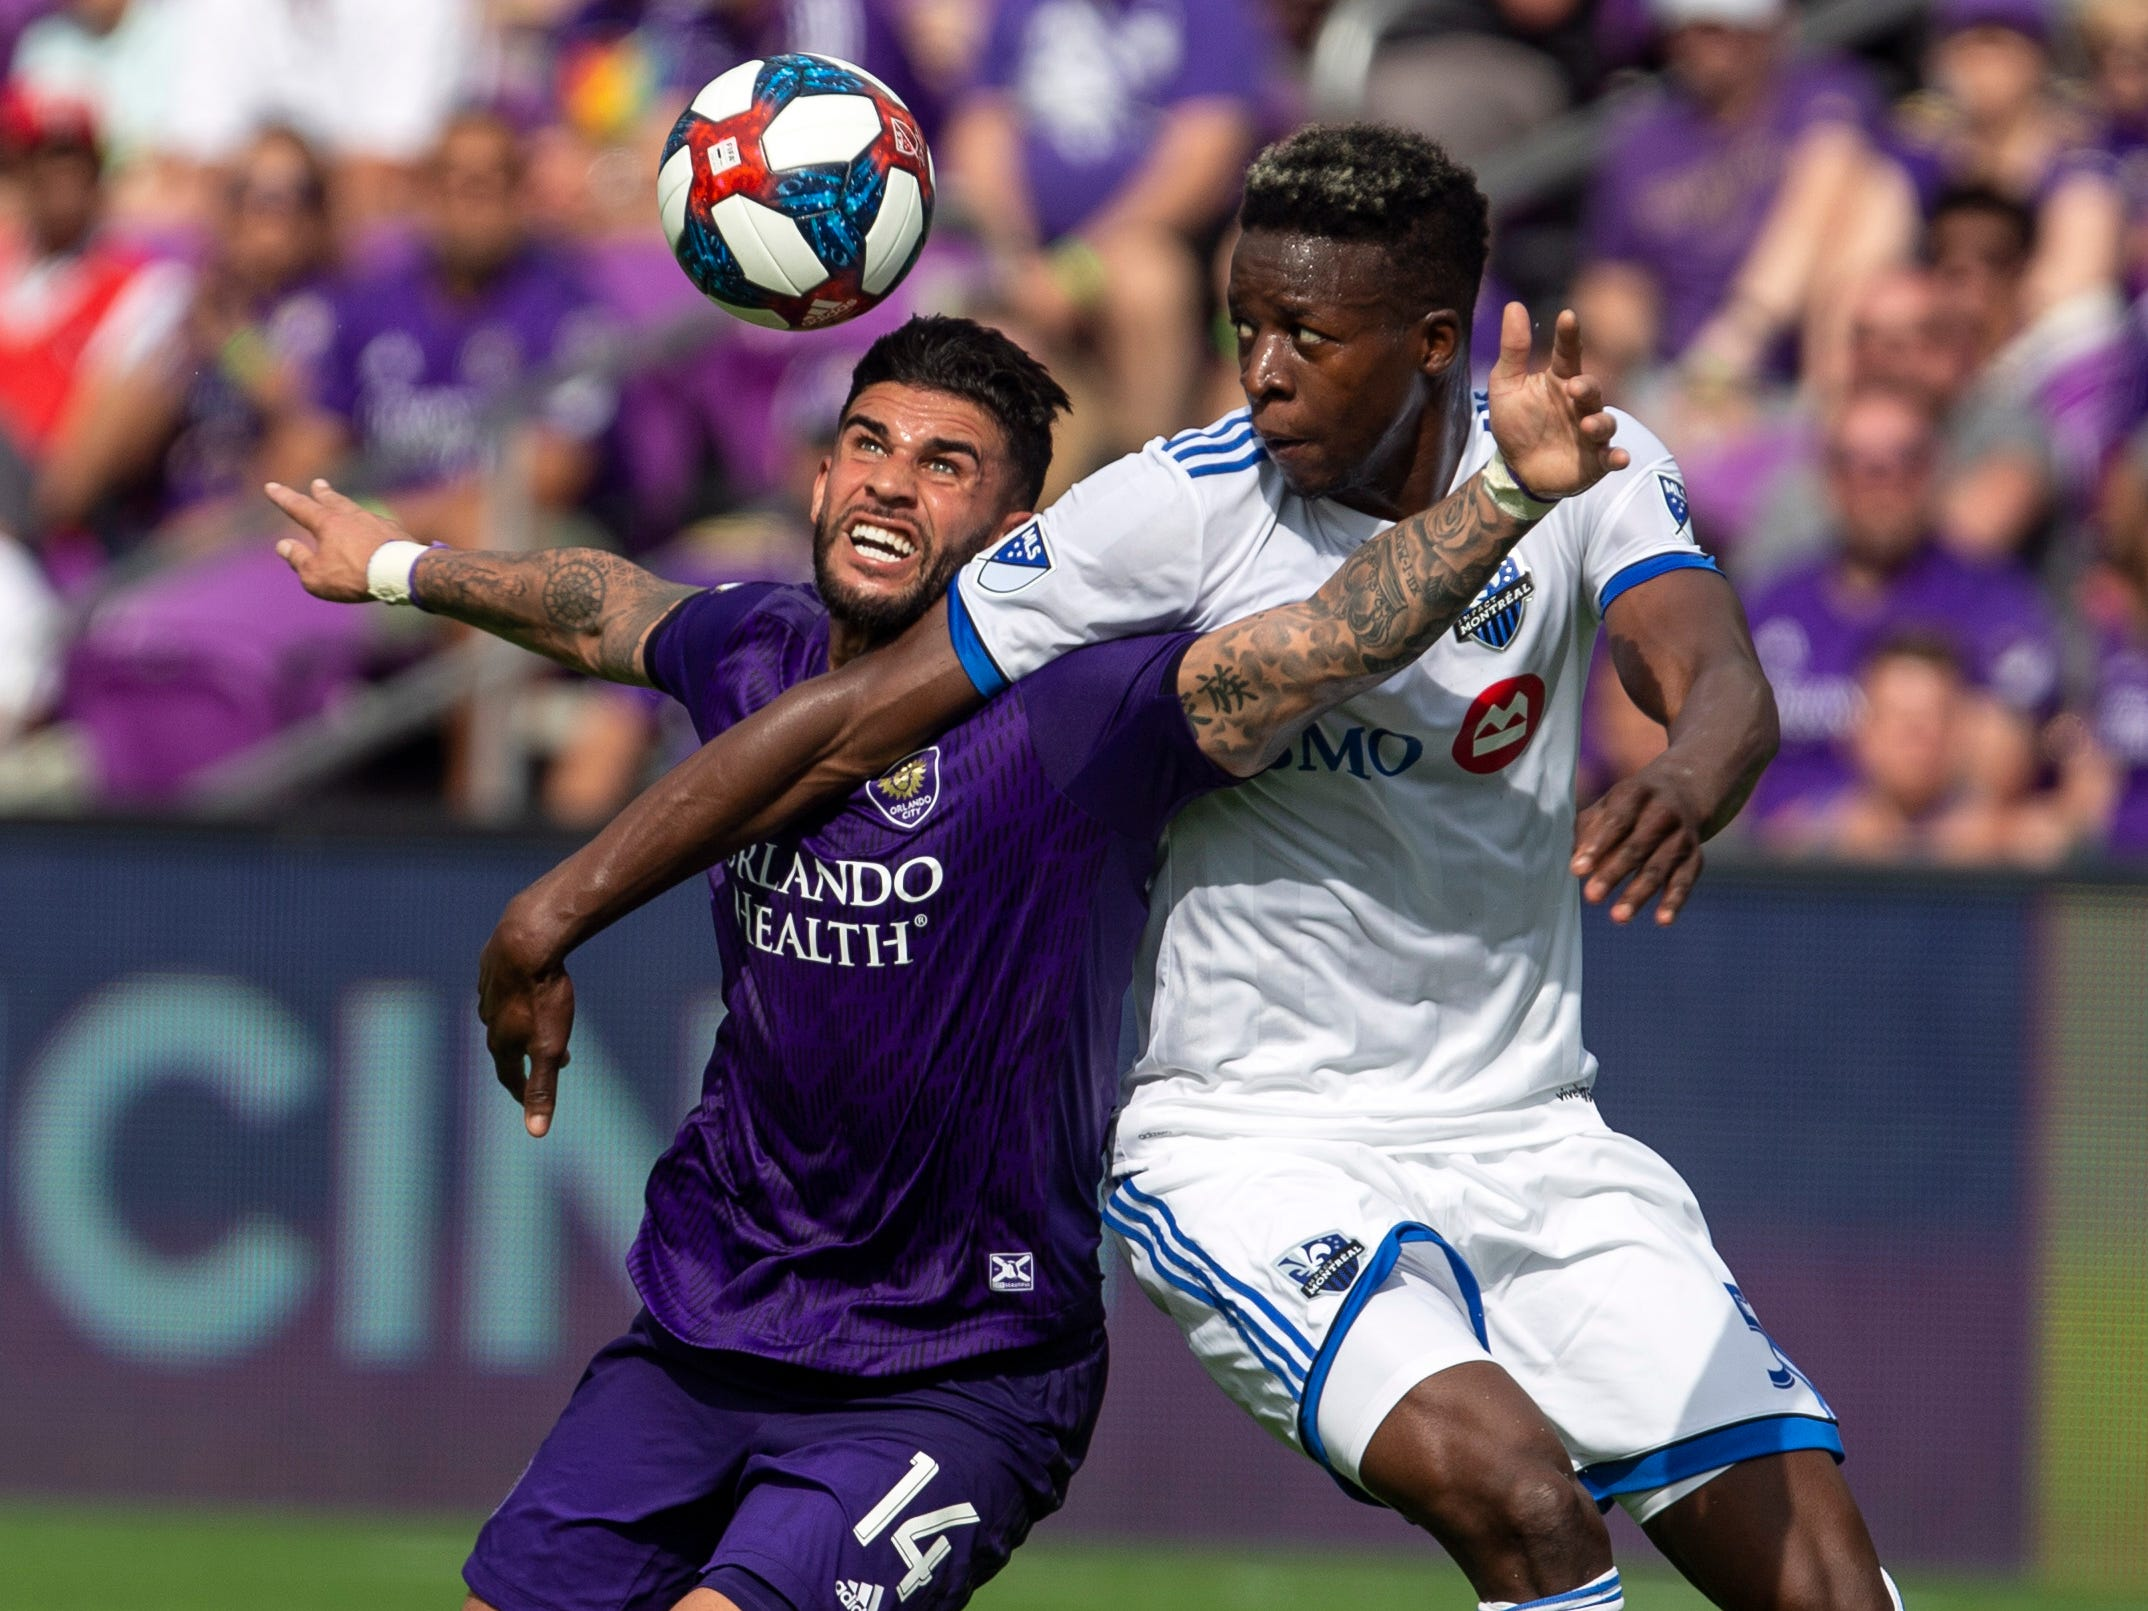 March 16: Orlando City forward Dom Dwyer (14) and Montreal Impact defender Zakaria Diallo (5) fight for the ball during the first half at Orlando City Stadium. Montreal won the game, 3-1.